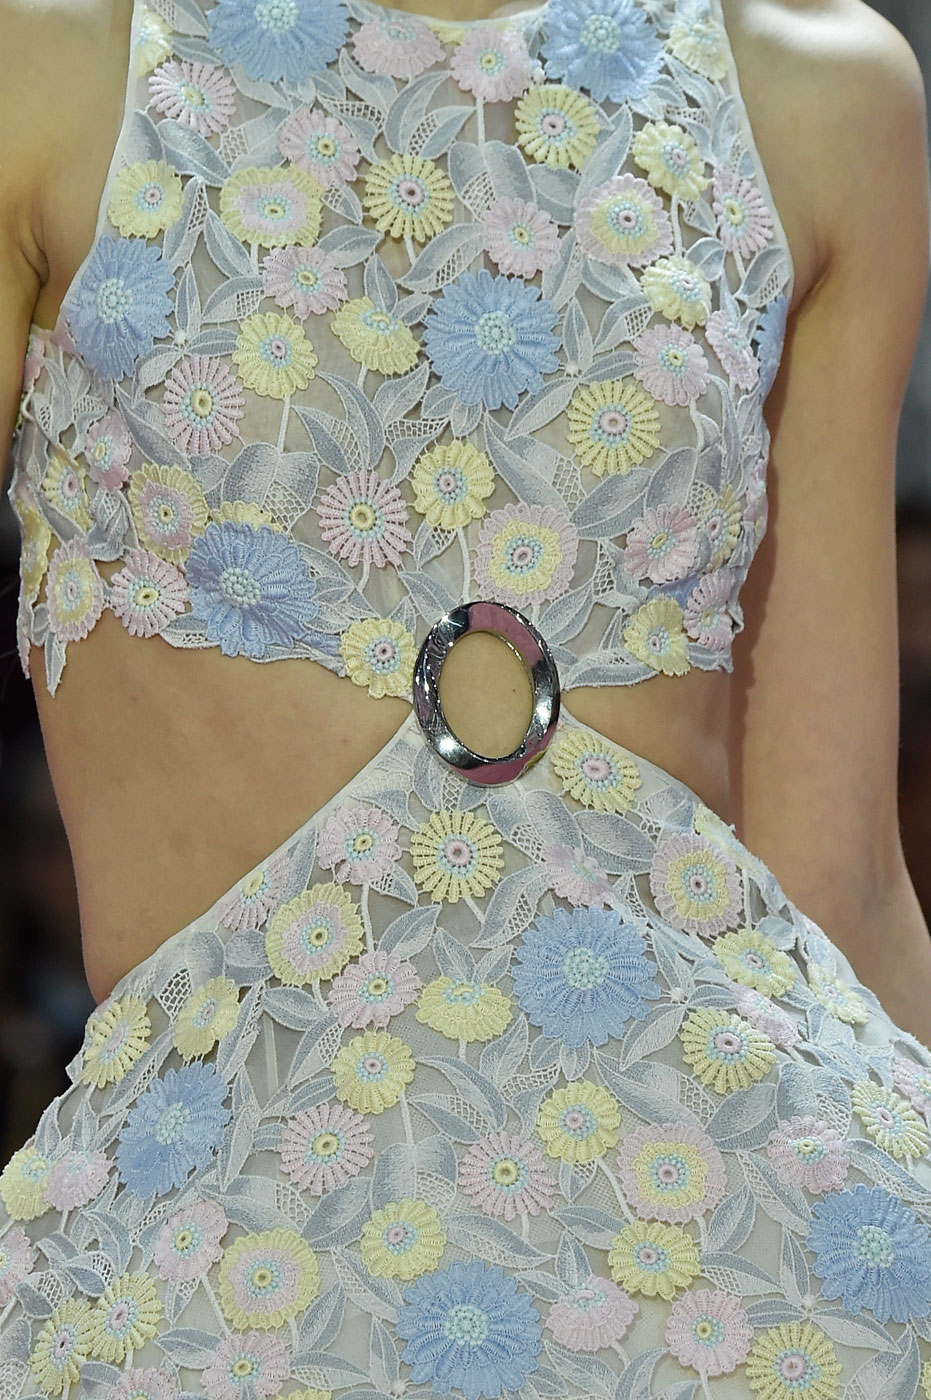 Christian-Dior-fashion-runway-show-close-ups-haute-couture-paris-spring-summer-2015-the-impression-055